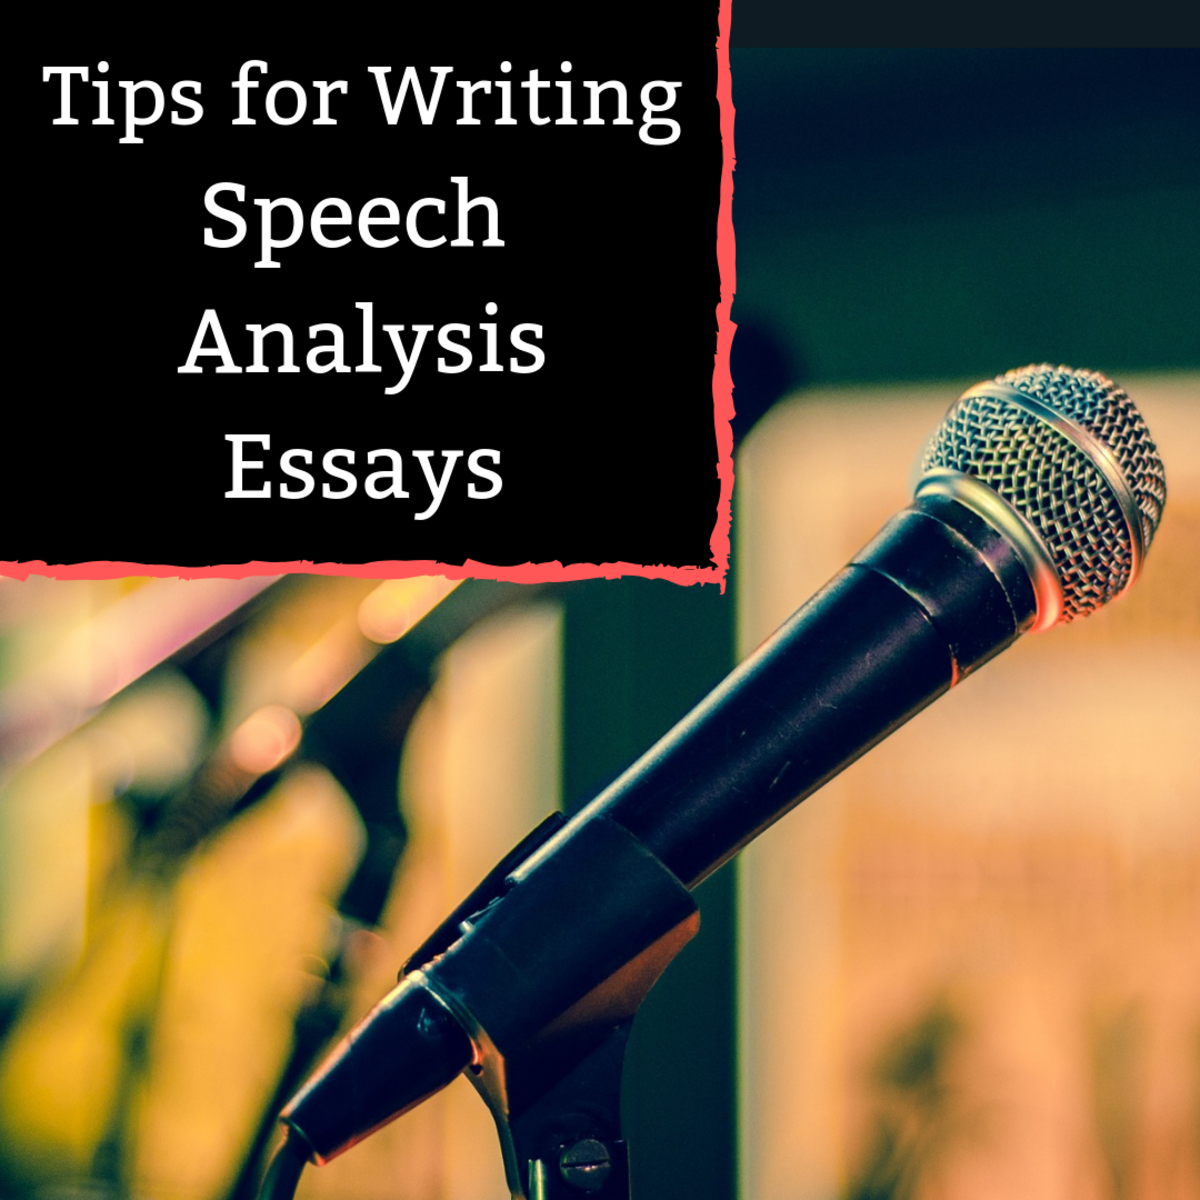 How to Write and Format a Speech Analysis Essay (With Example)